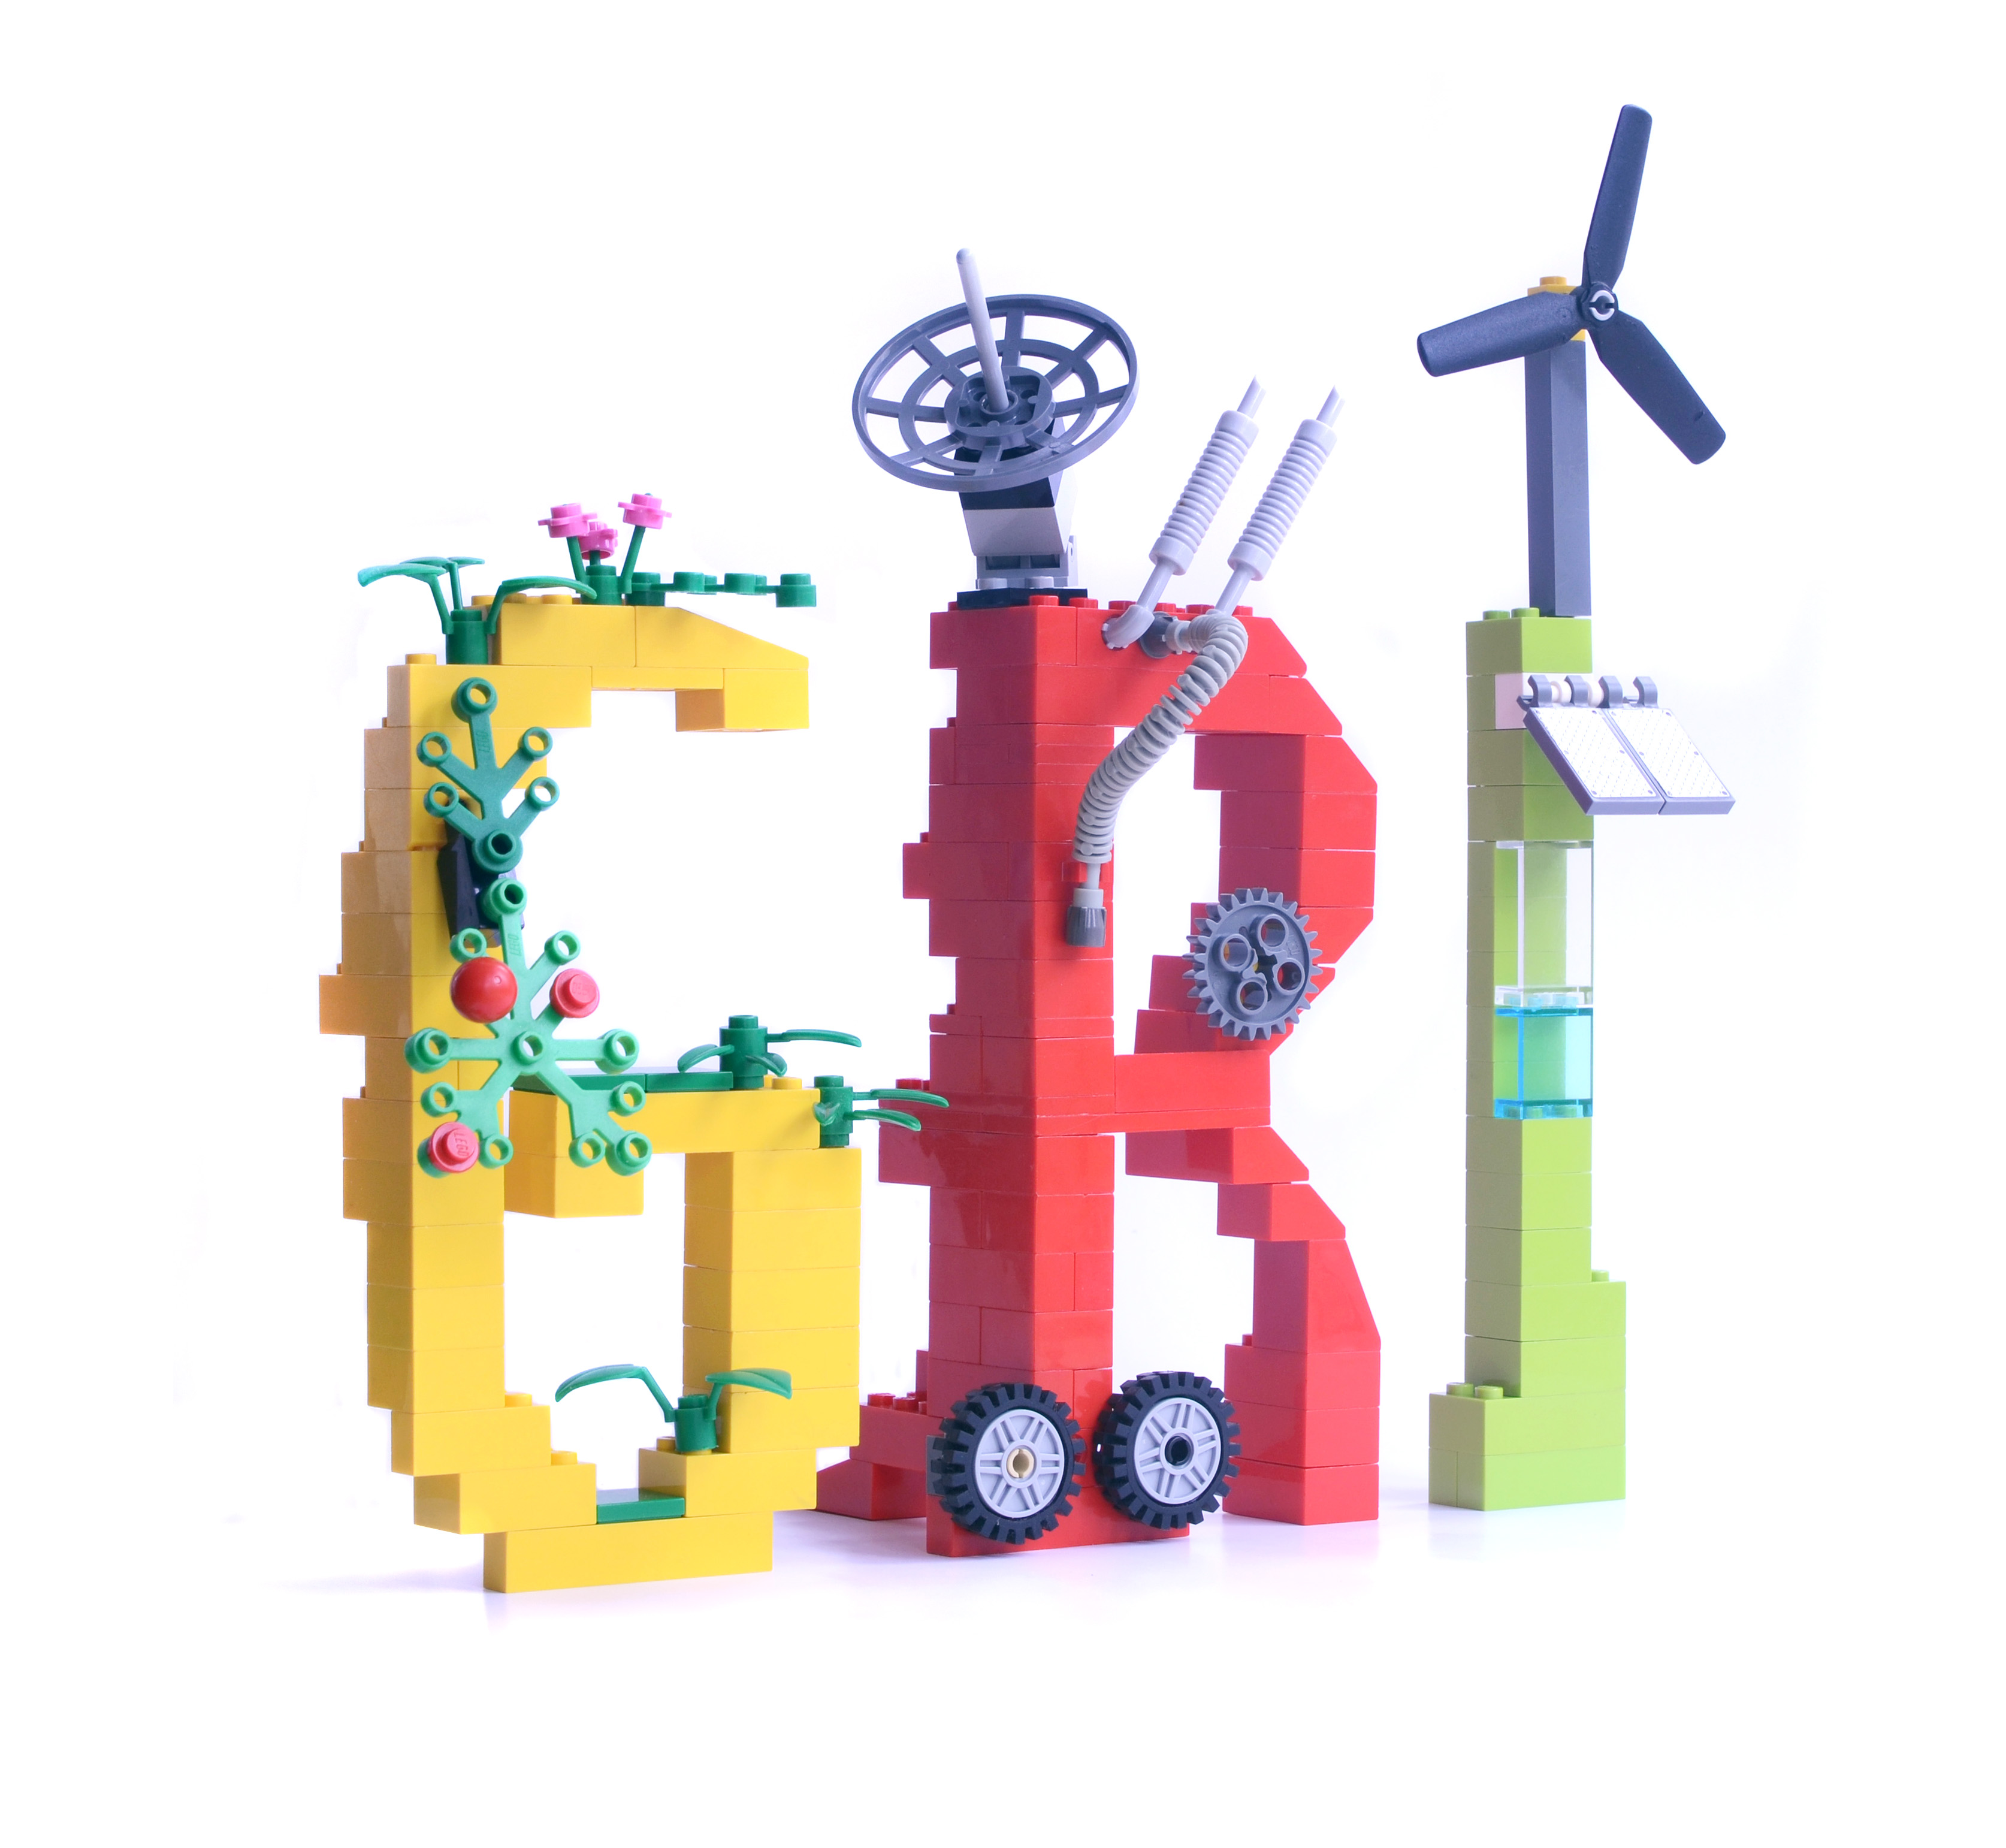 Sustainability has just become one awesome set of LEGO.